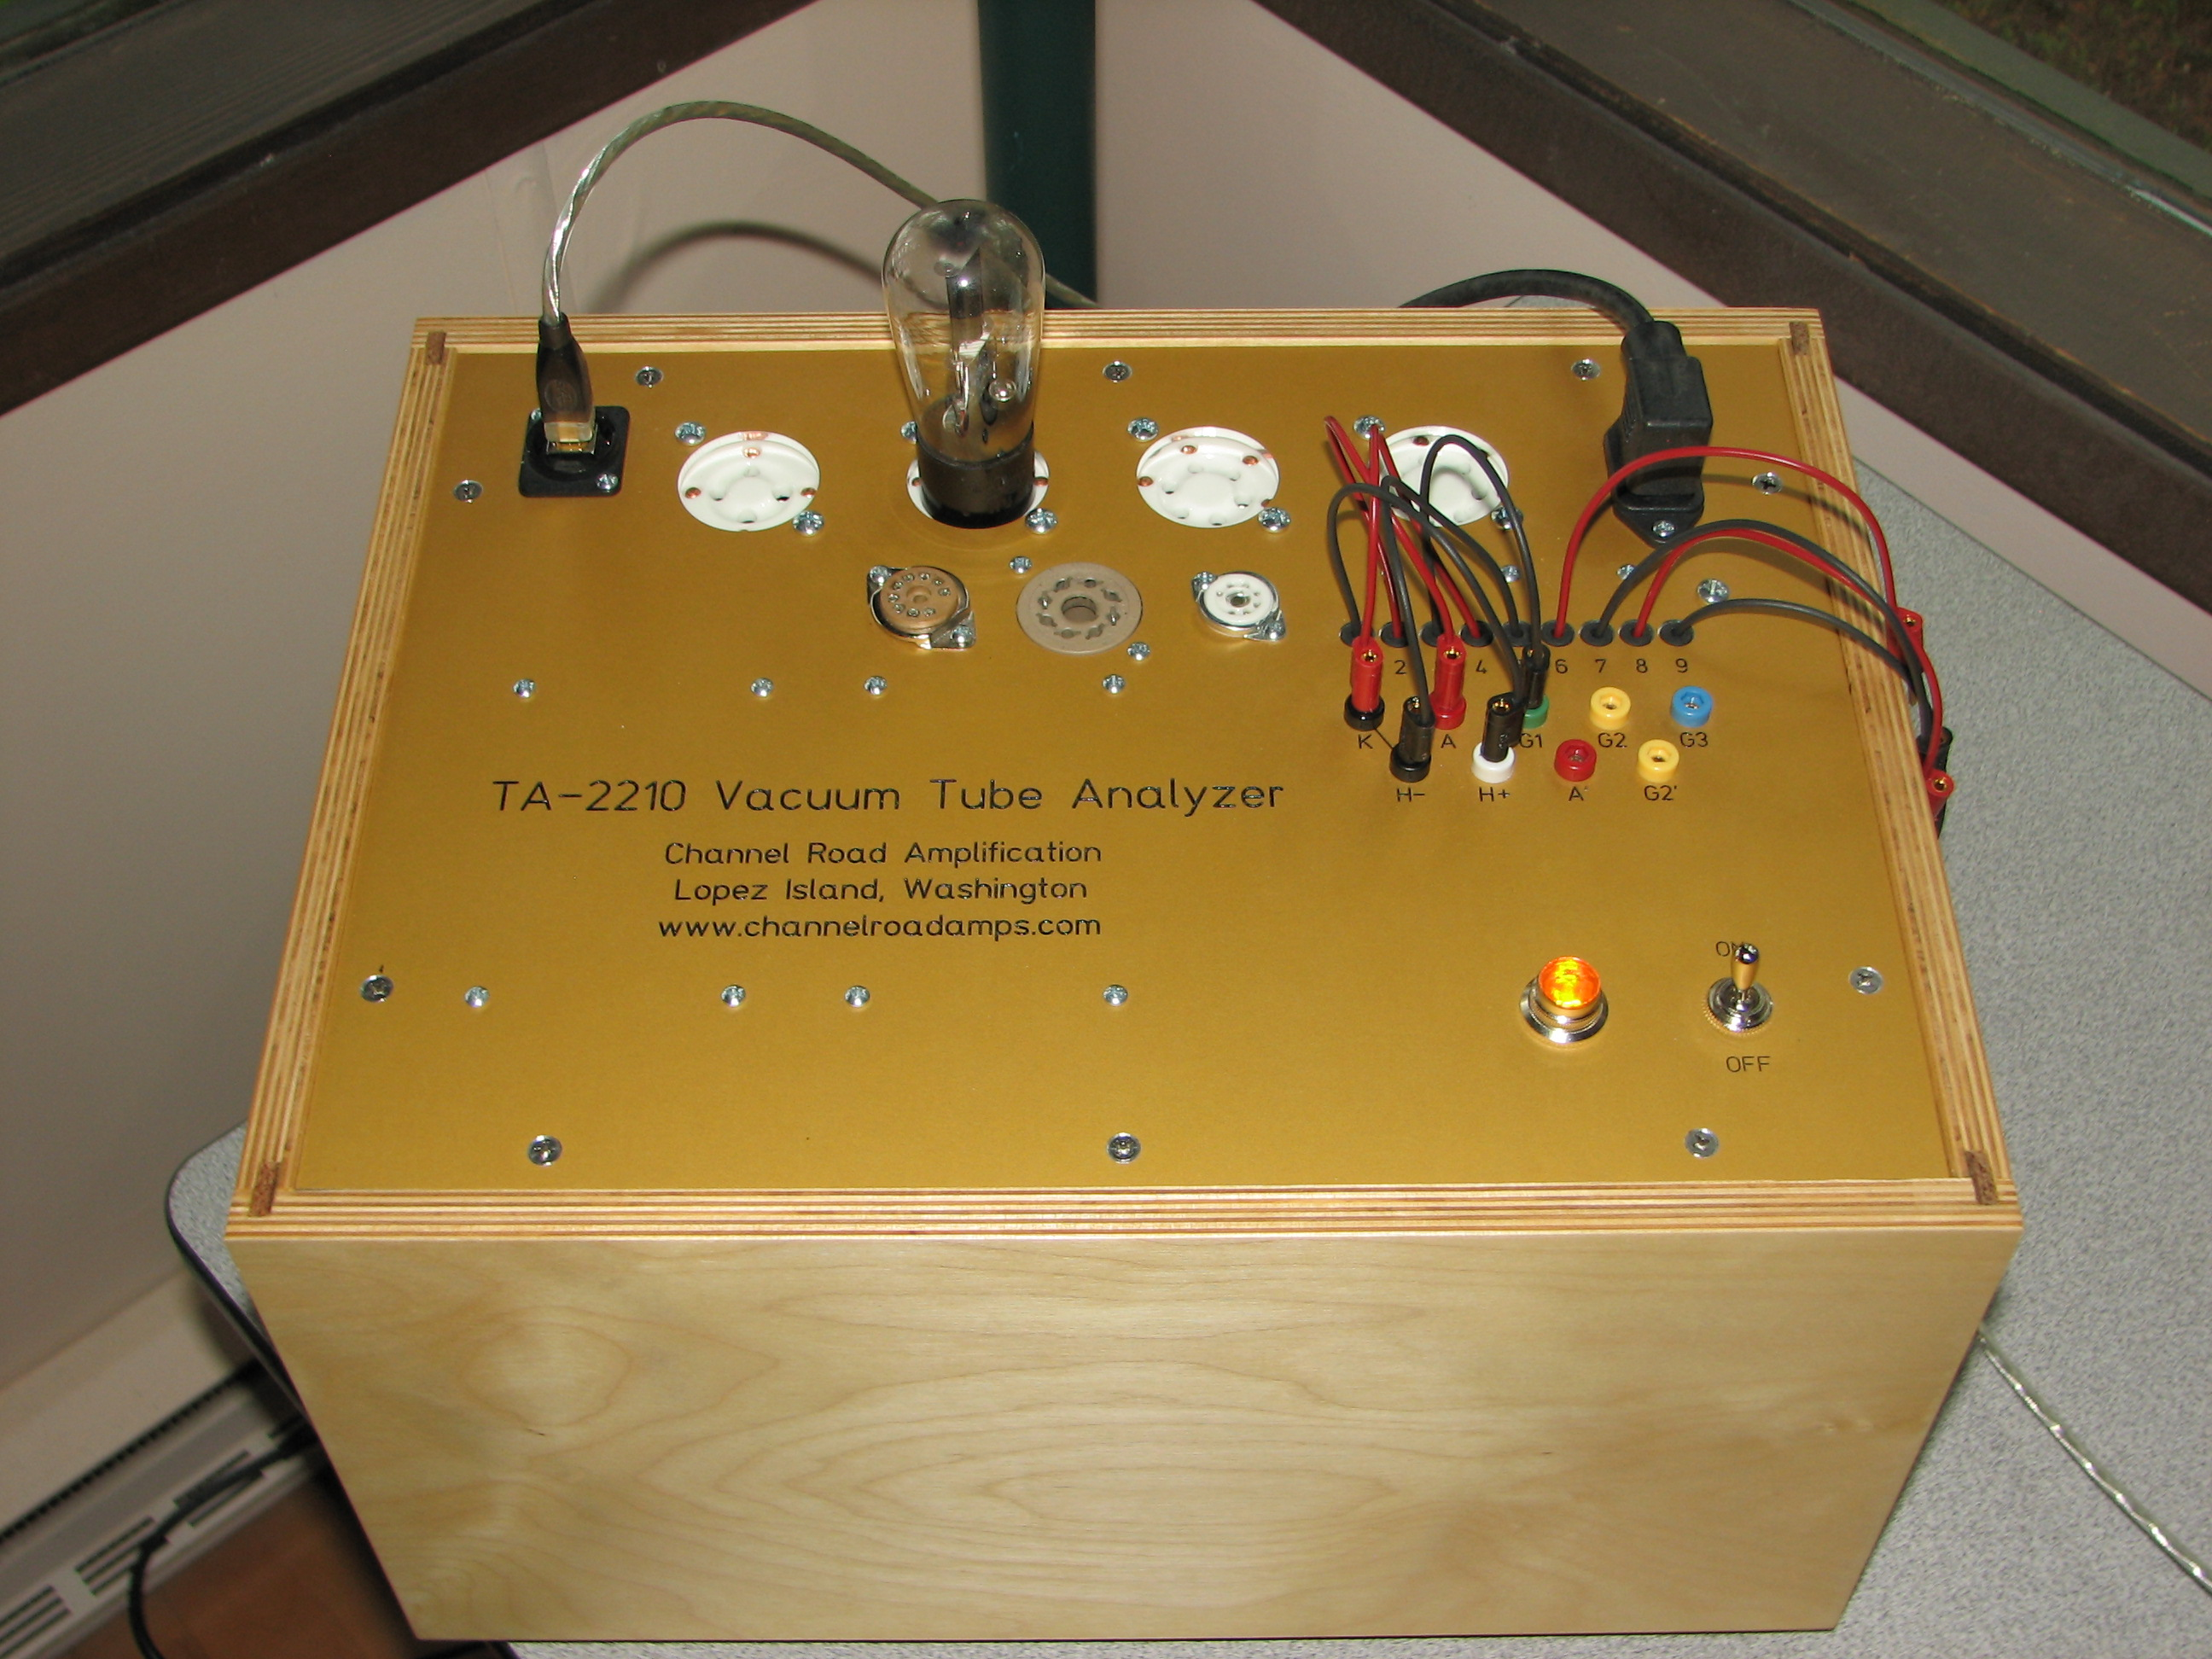 Channel Road Amplification: Vacuum Tube Analyzer, Part One